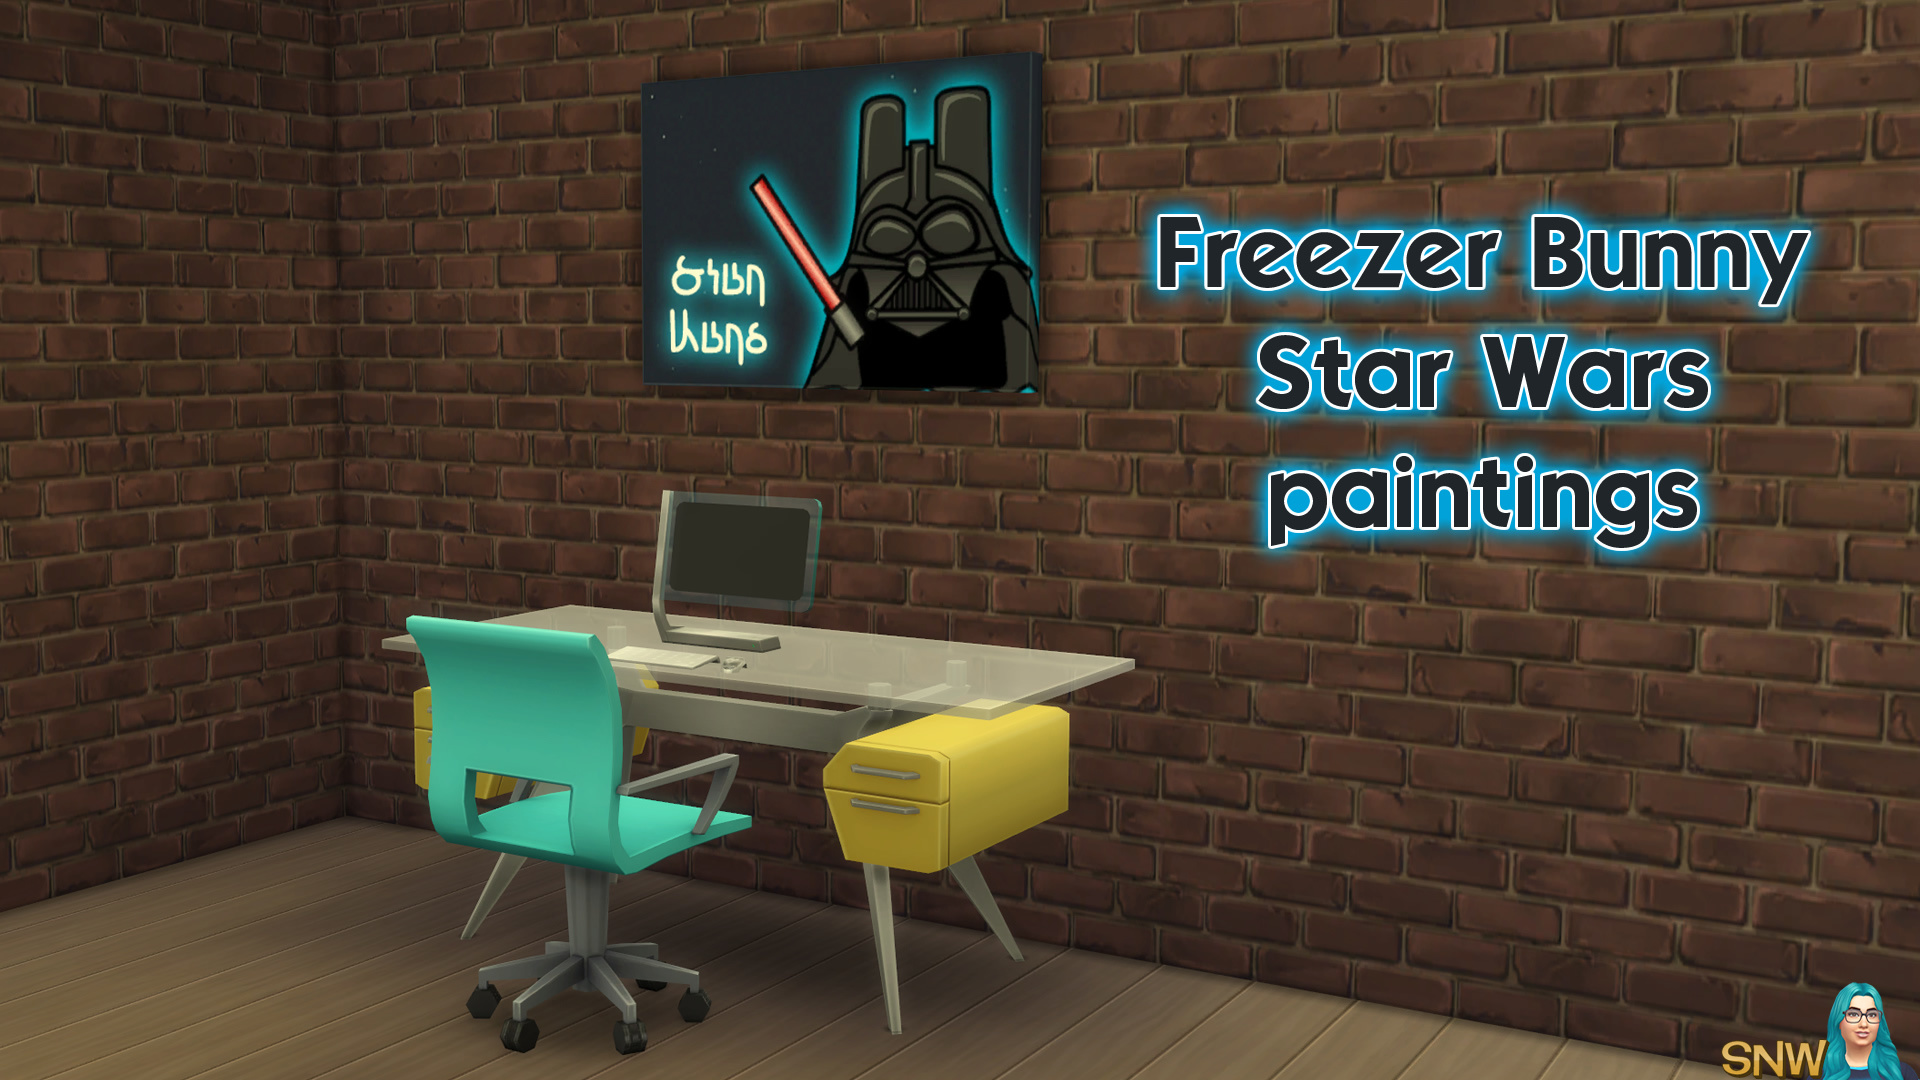 Freezer Bunny Star Wars paintings